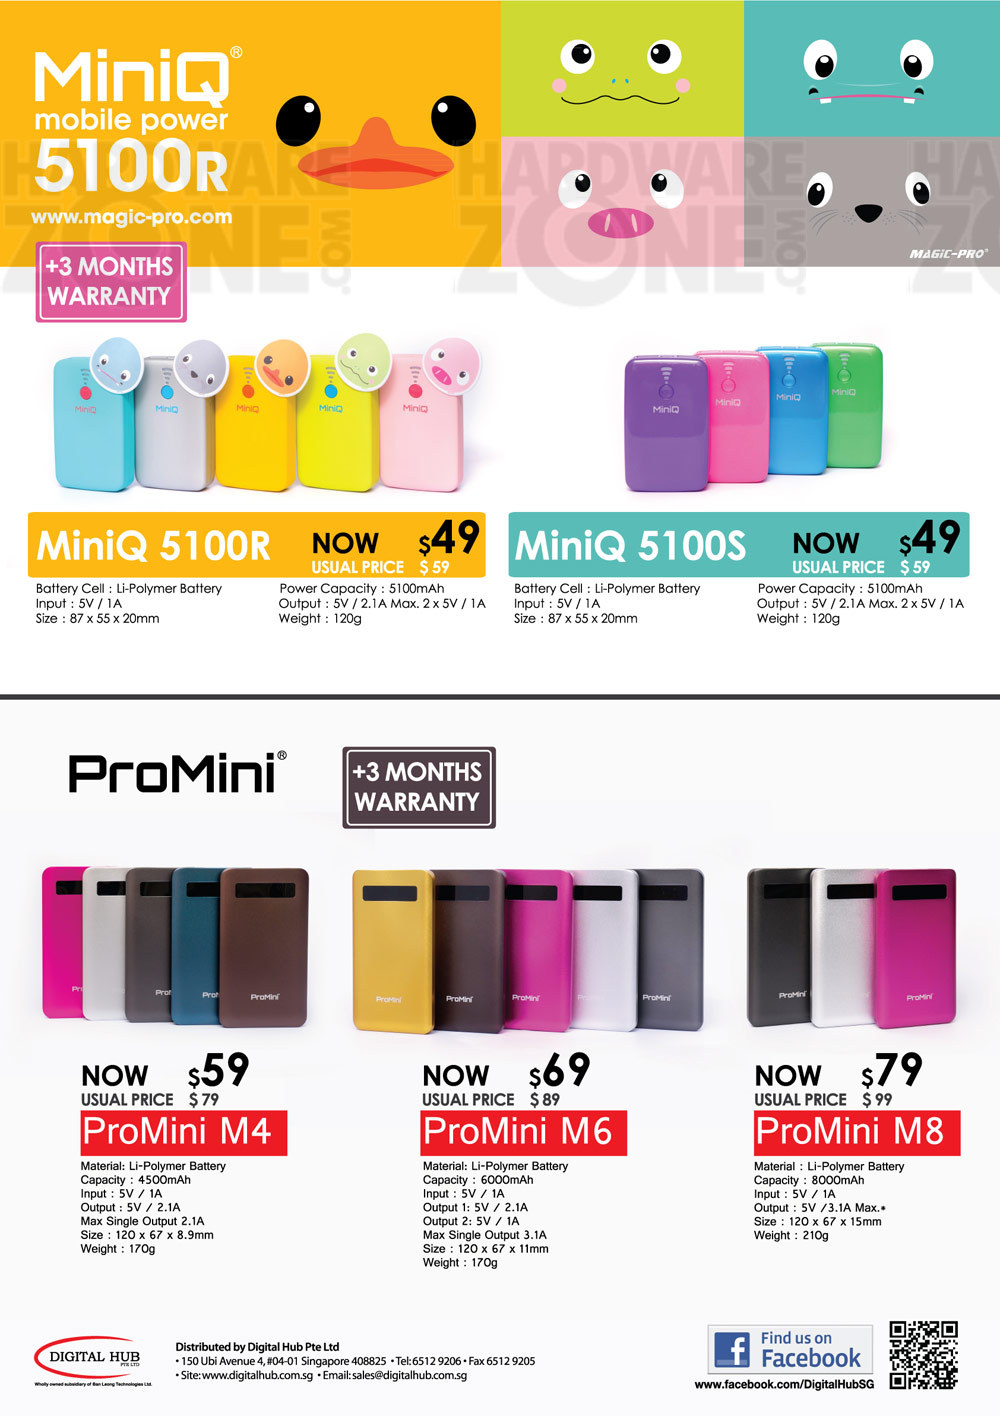 Magic-Pro power banks